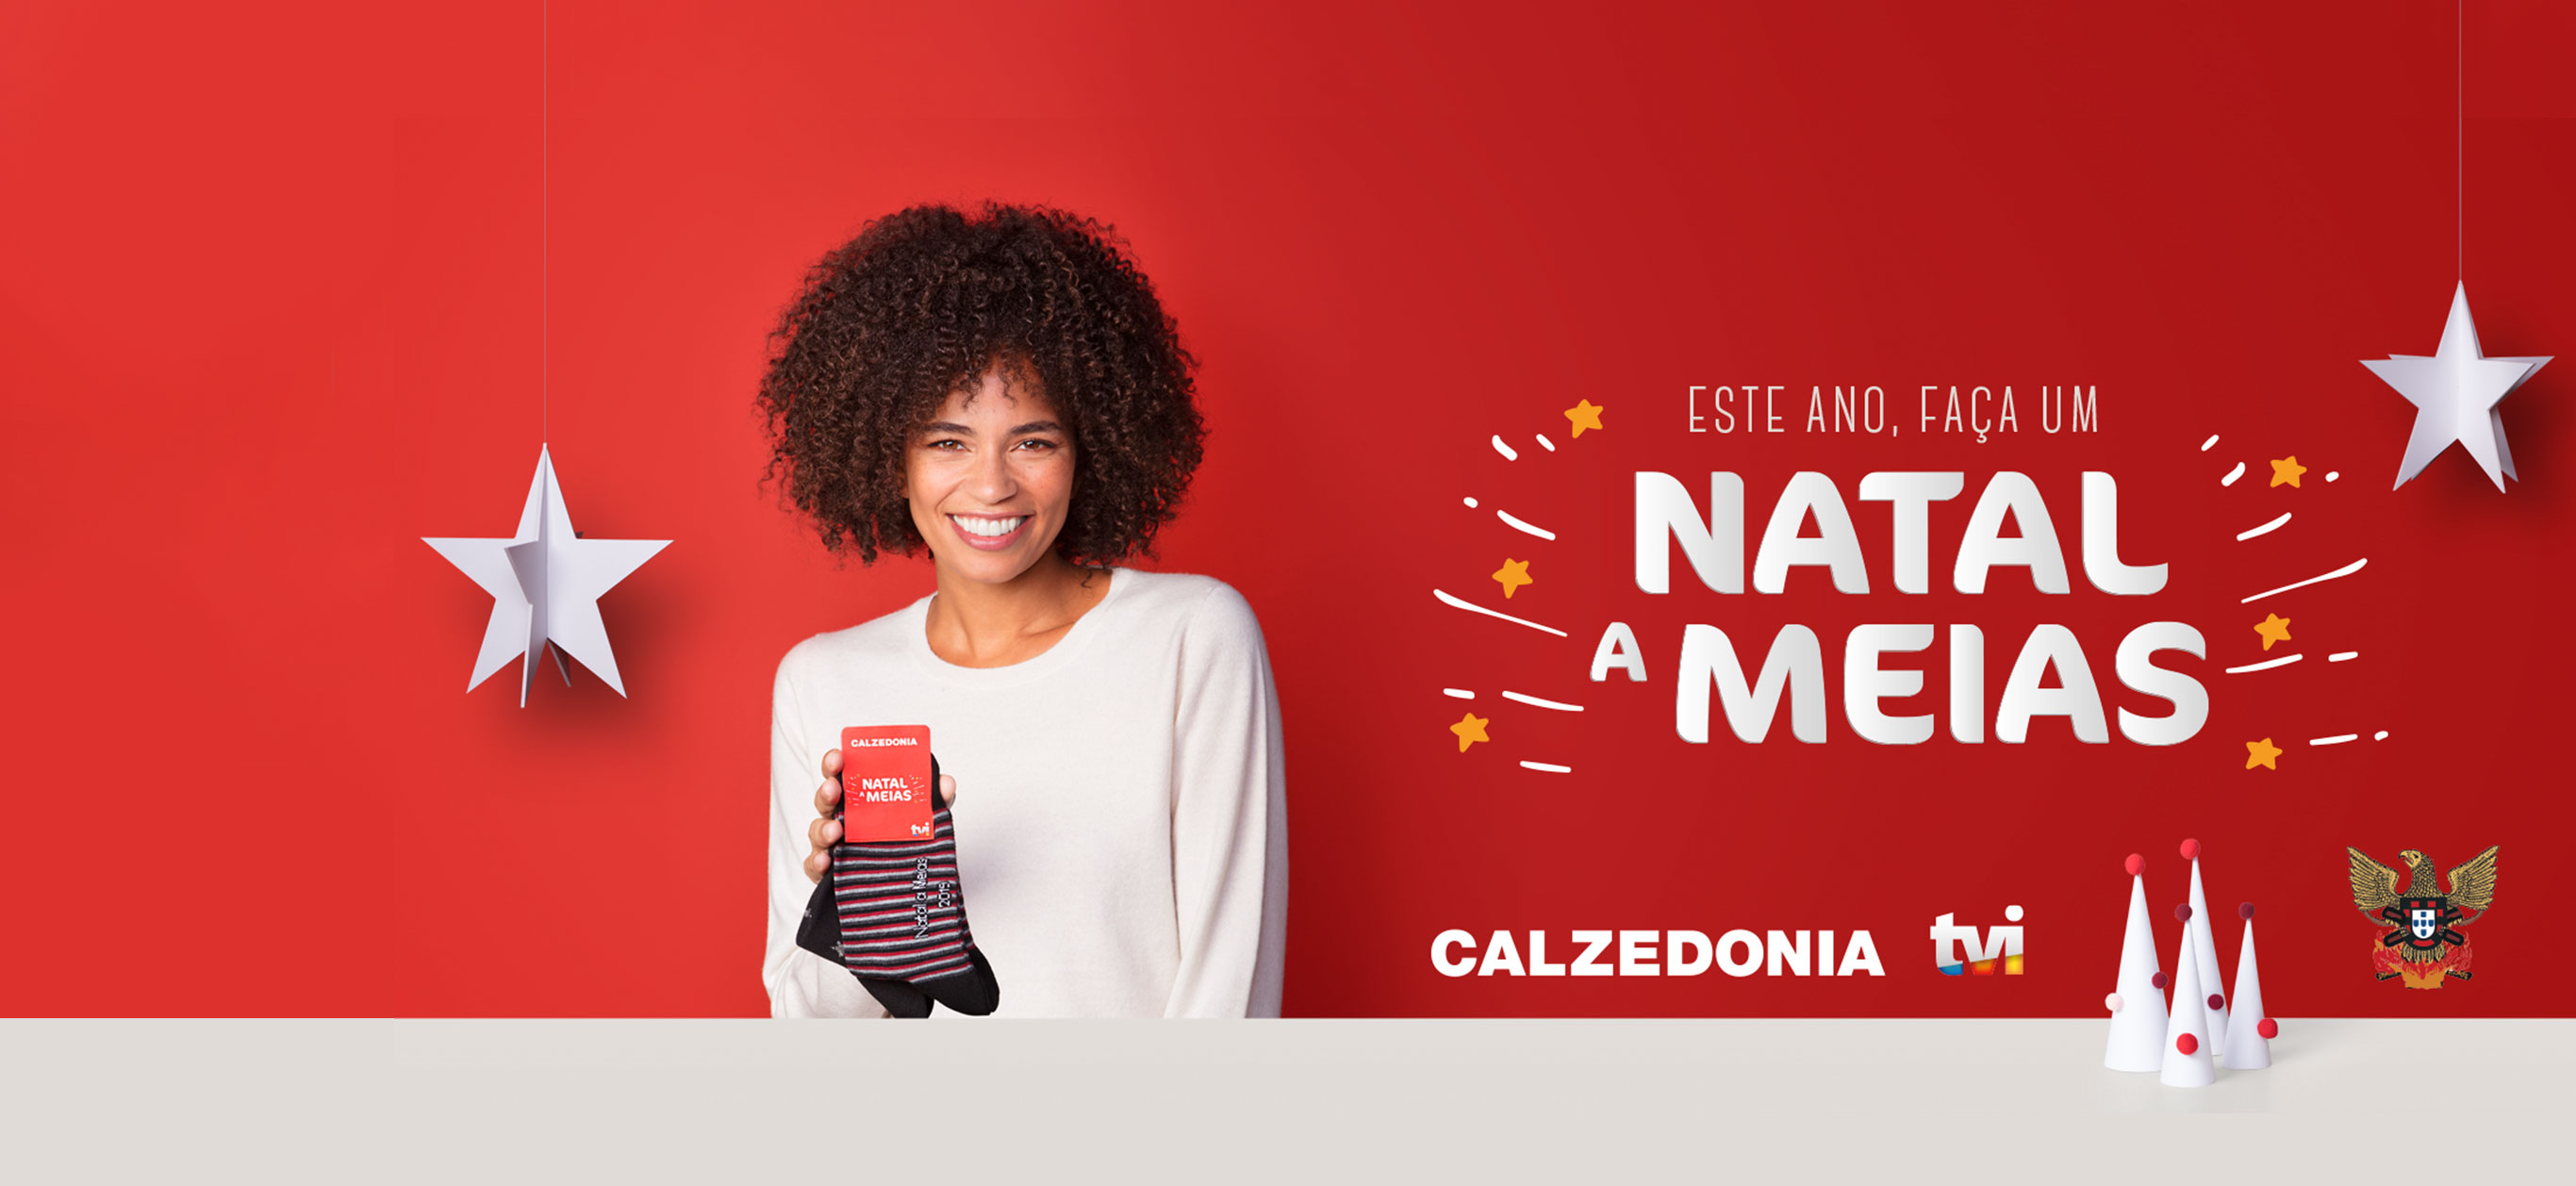 XMAS TIME WITH CALZEDONIA